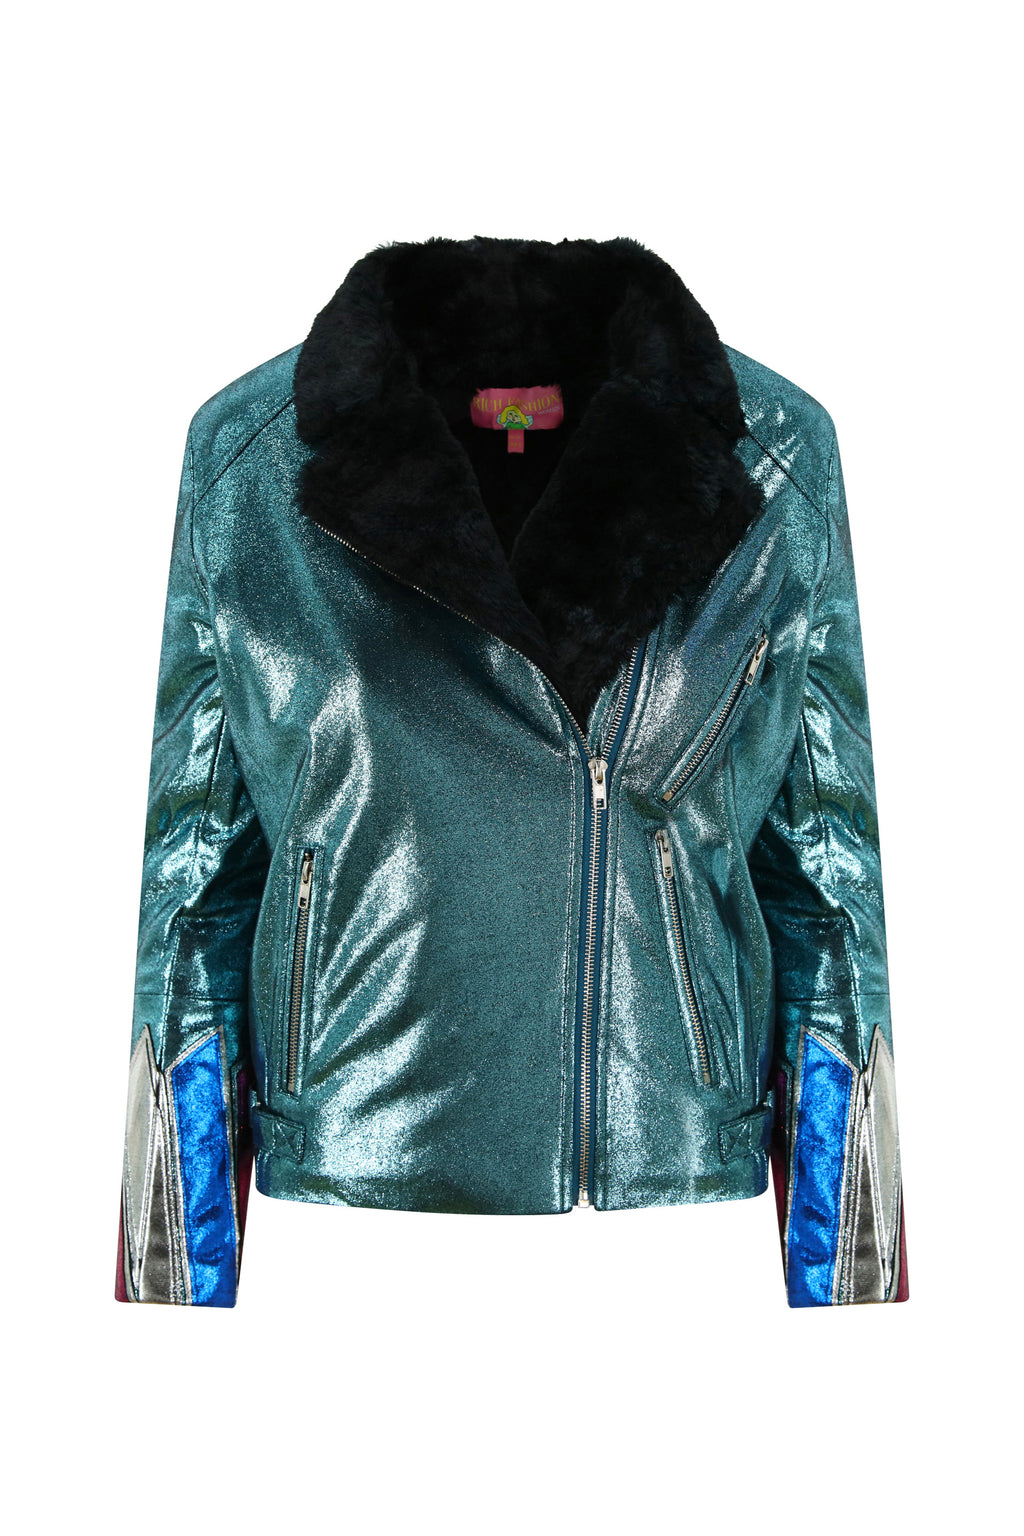 Faux Leather and Fur Metallic Teal Jacket